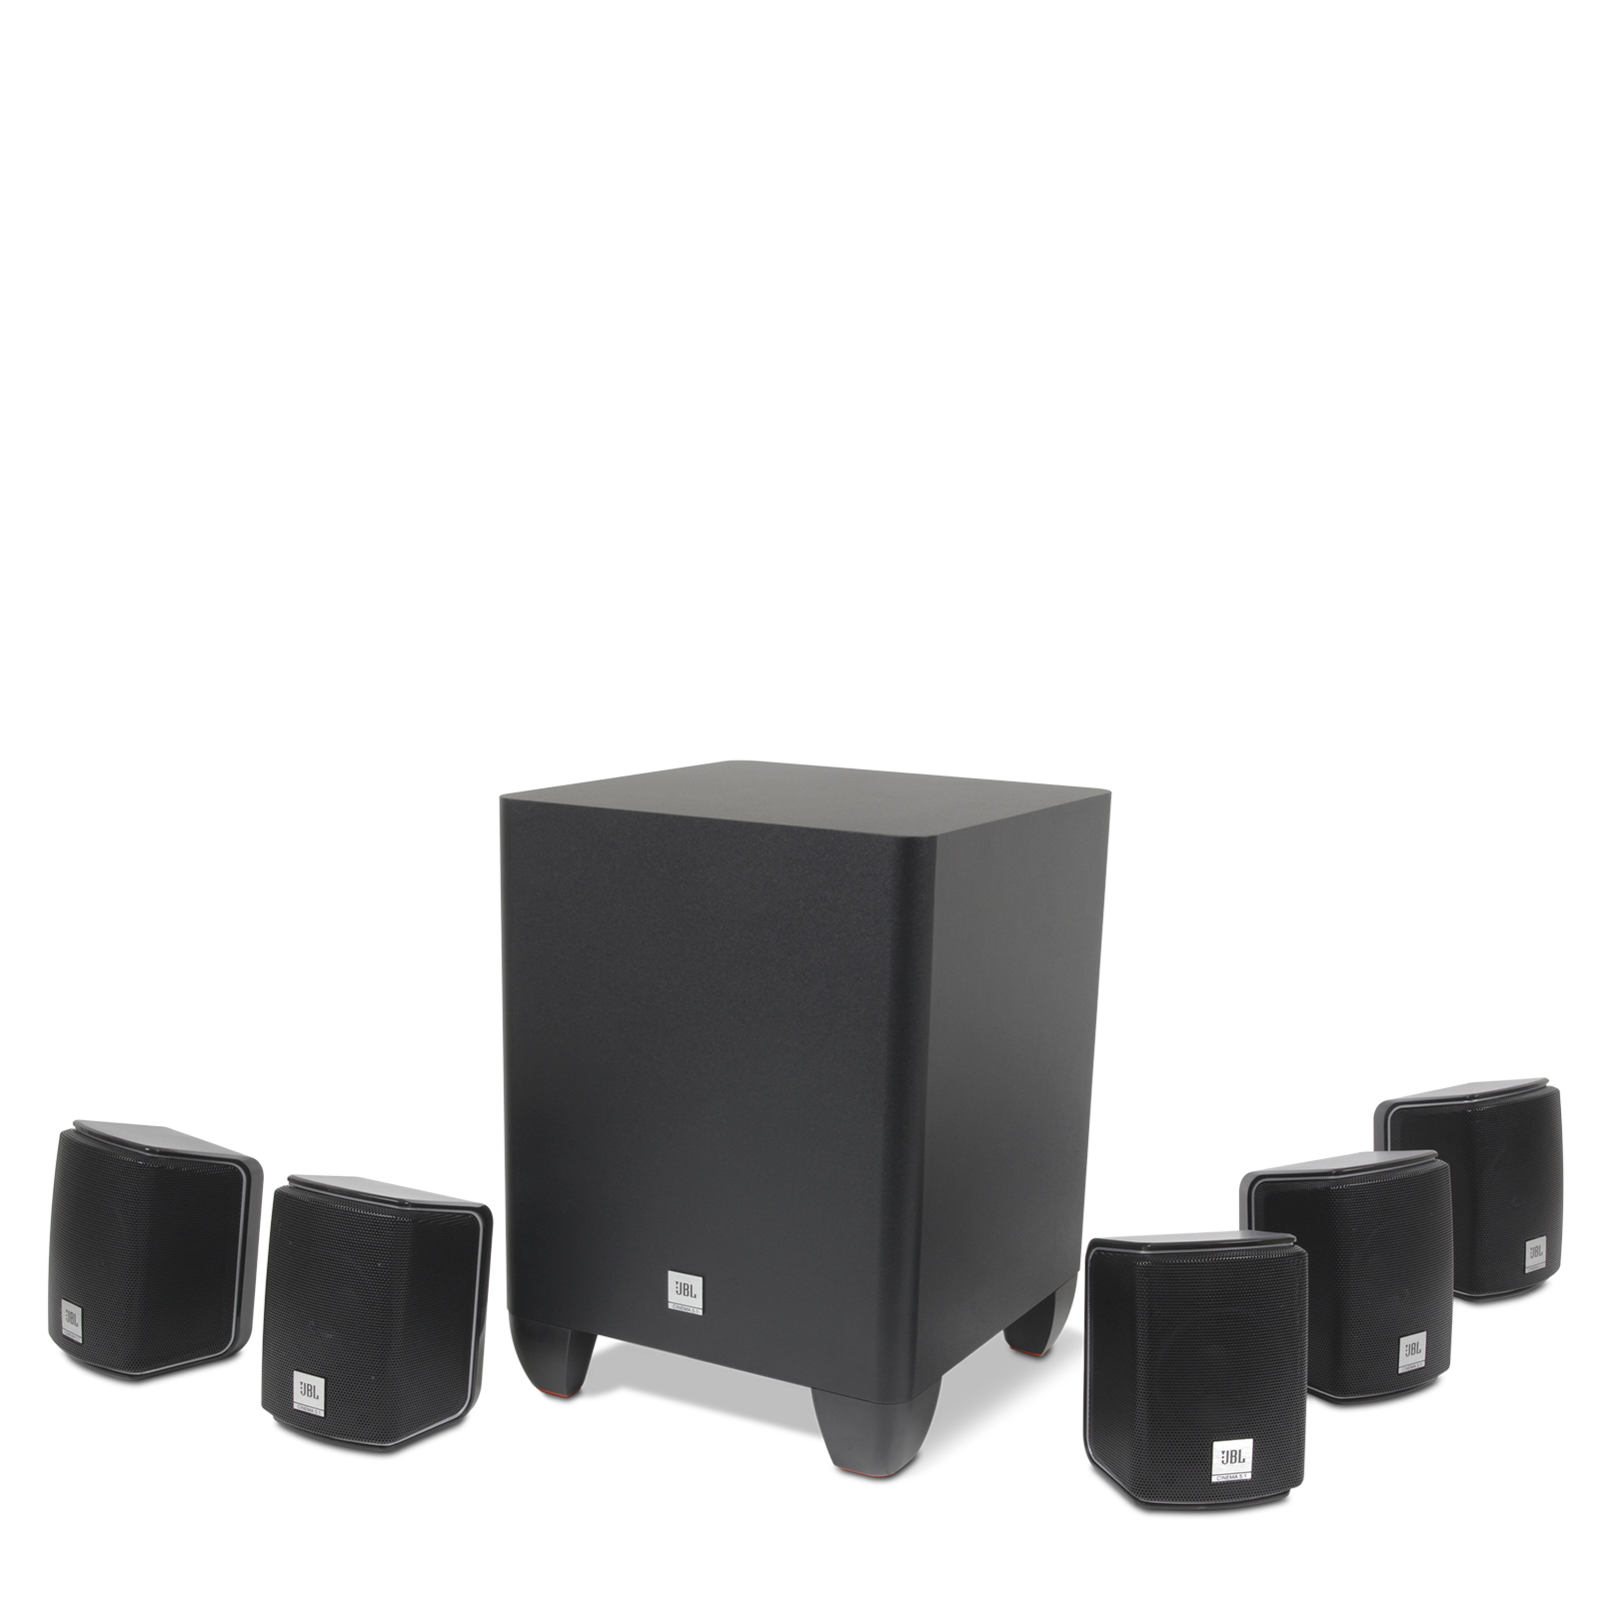 Cinema 510 51 Home Theater Speaker System With Powered Subwoofer How To Install Jbl